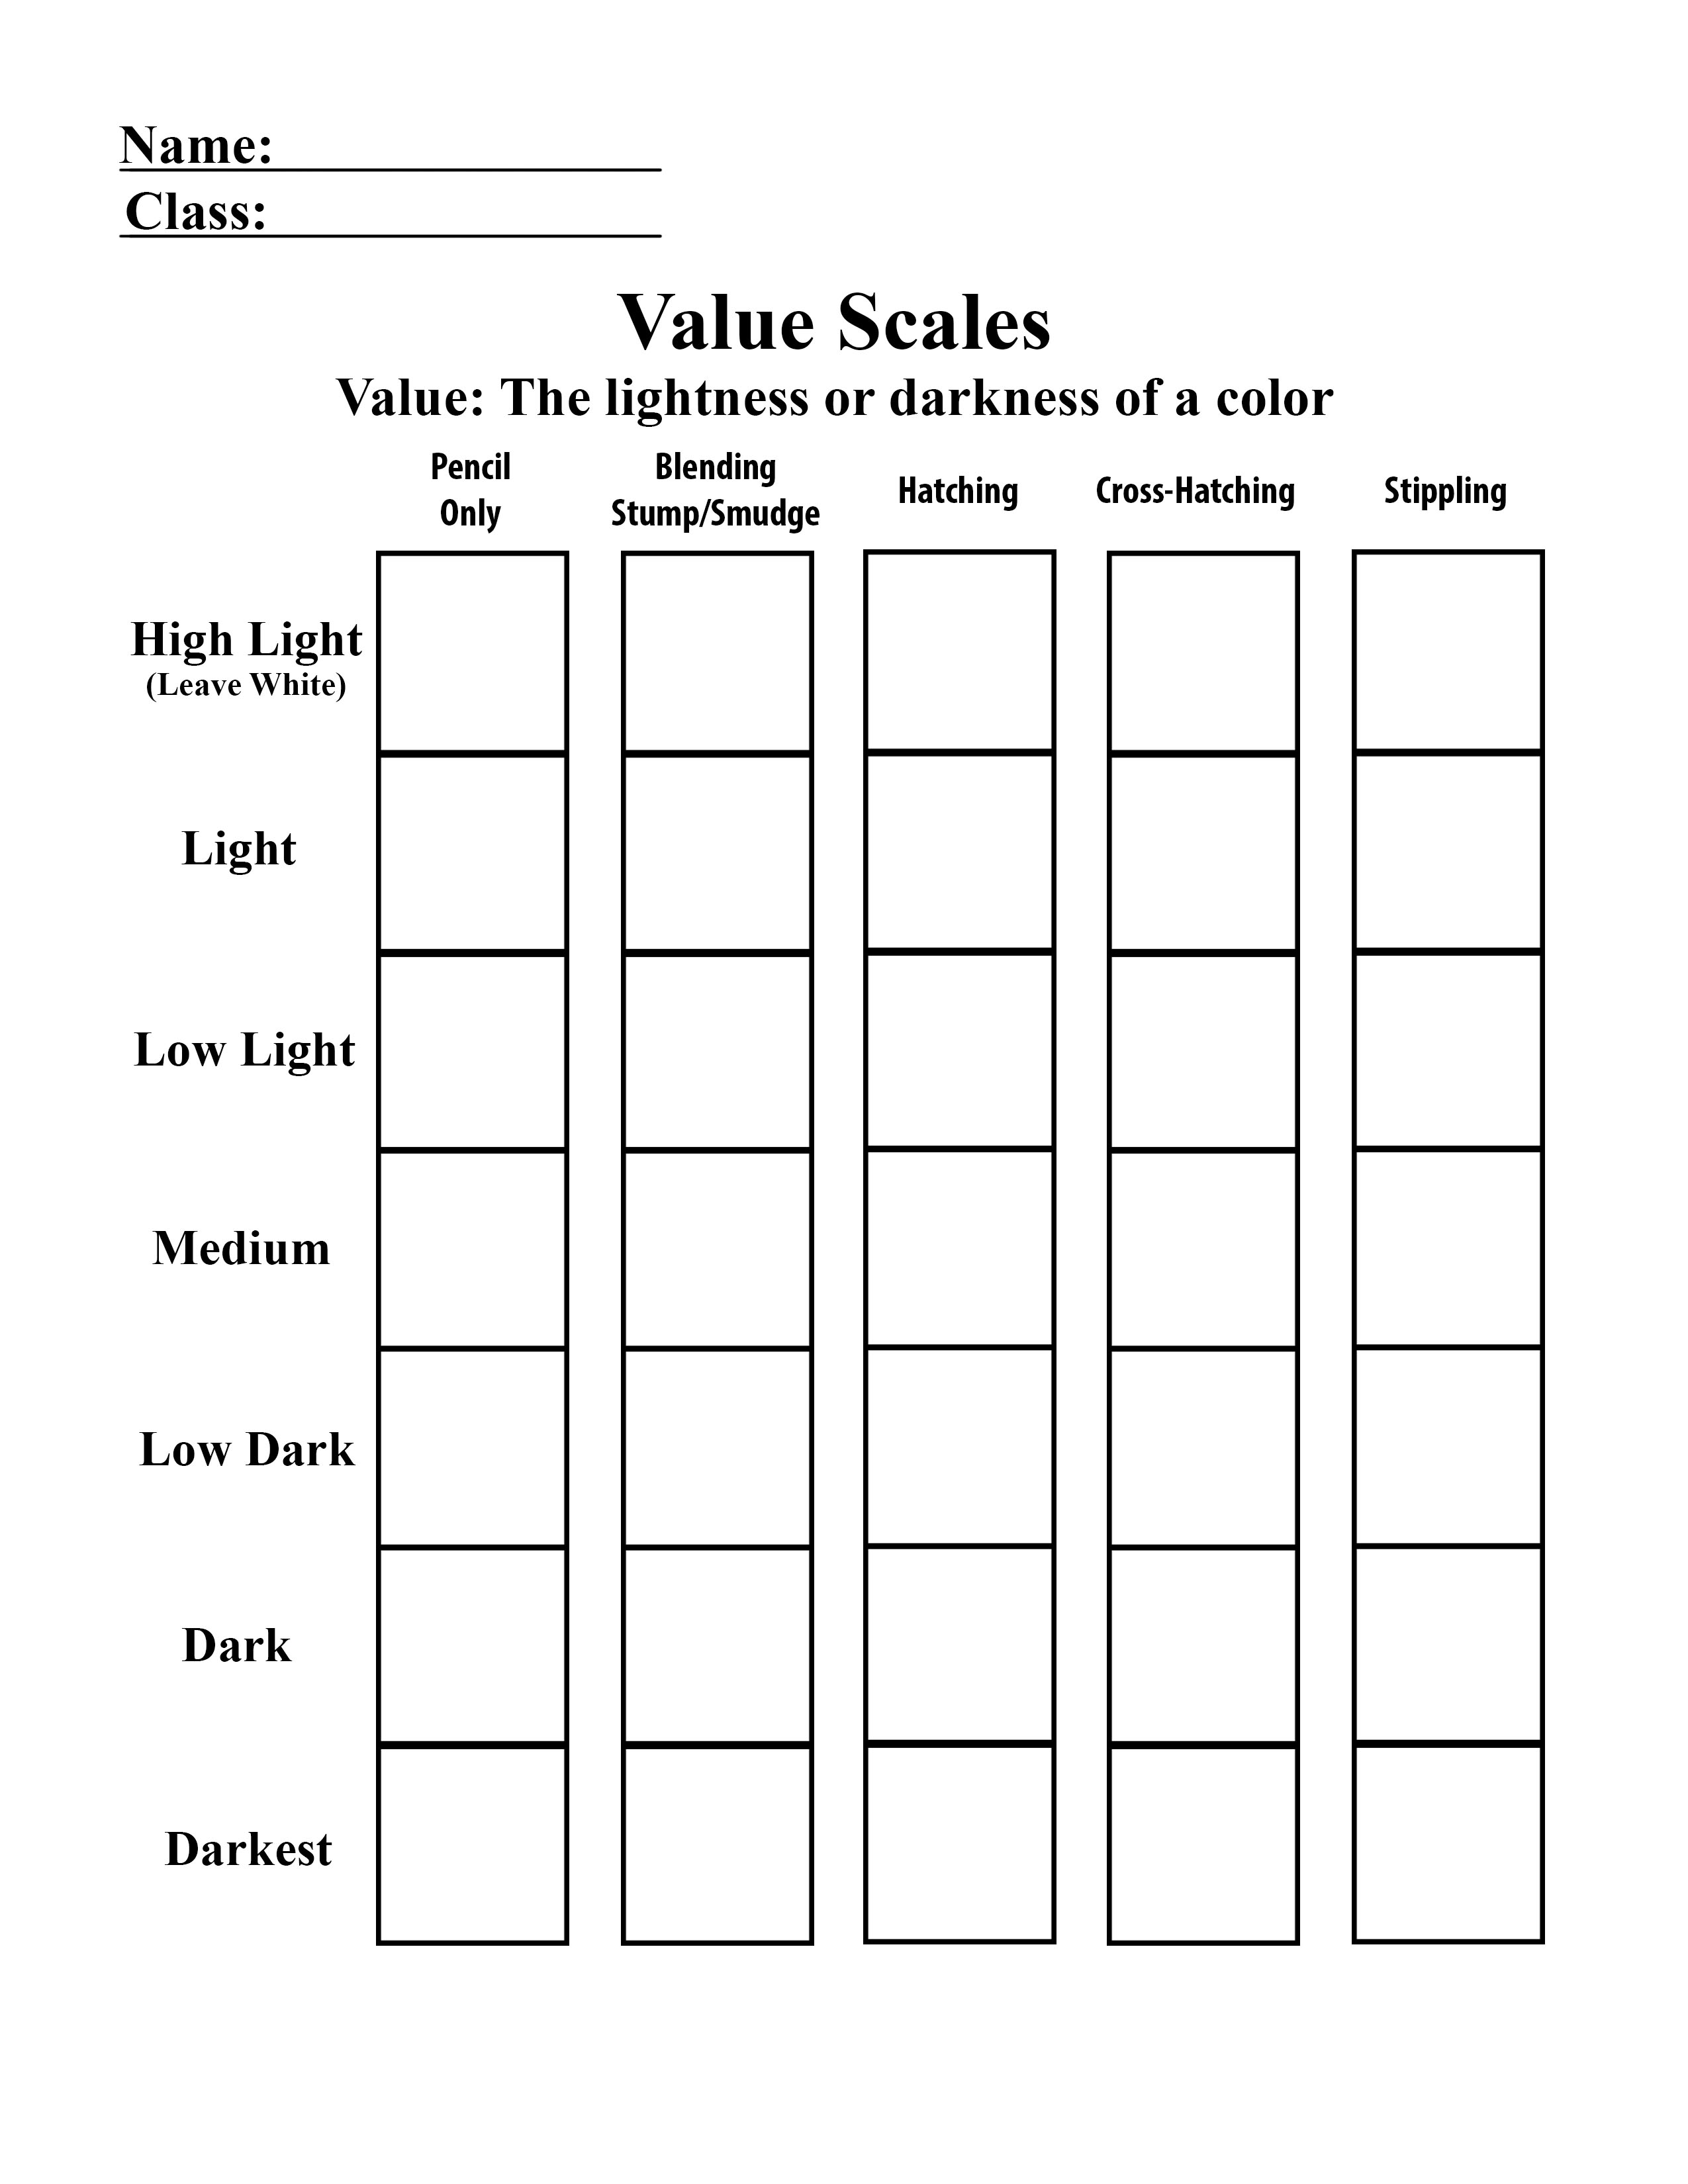 Stippling Value Scale Worksheet